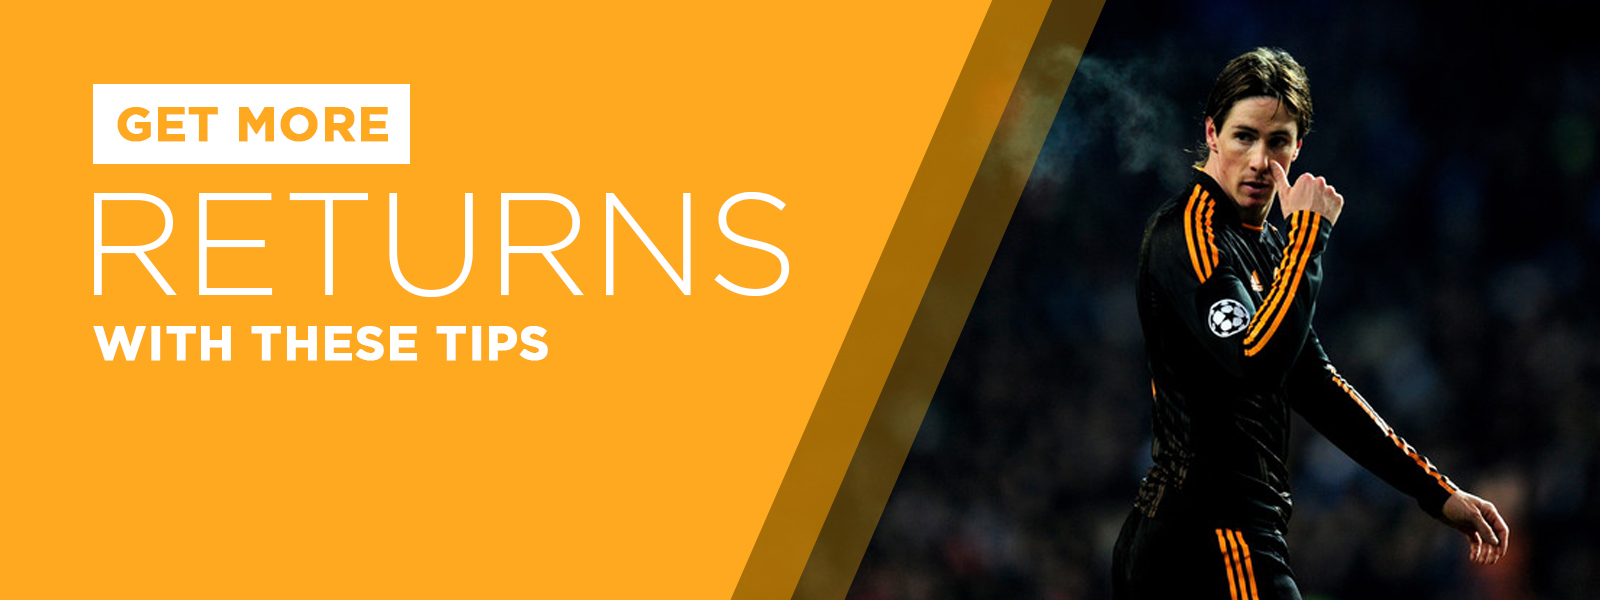 Get More Returns with These Soccer Betting Tips